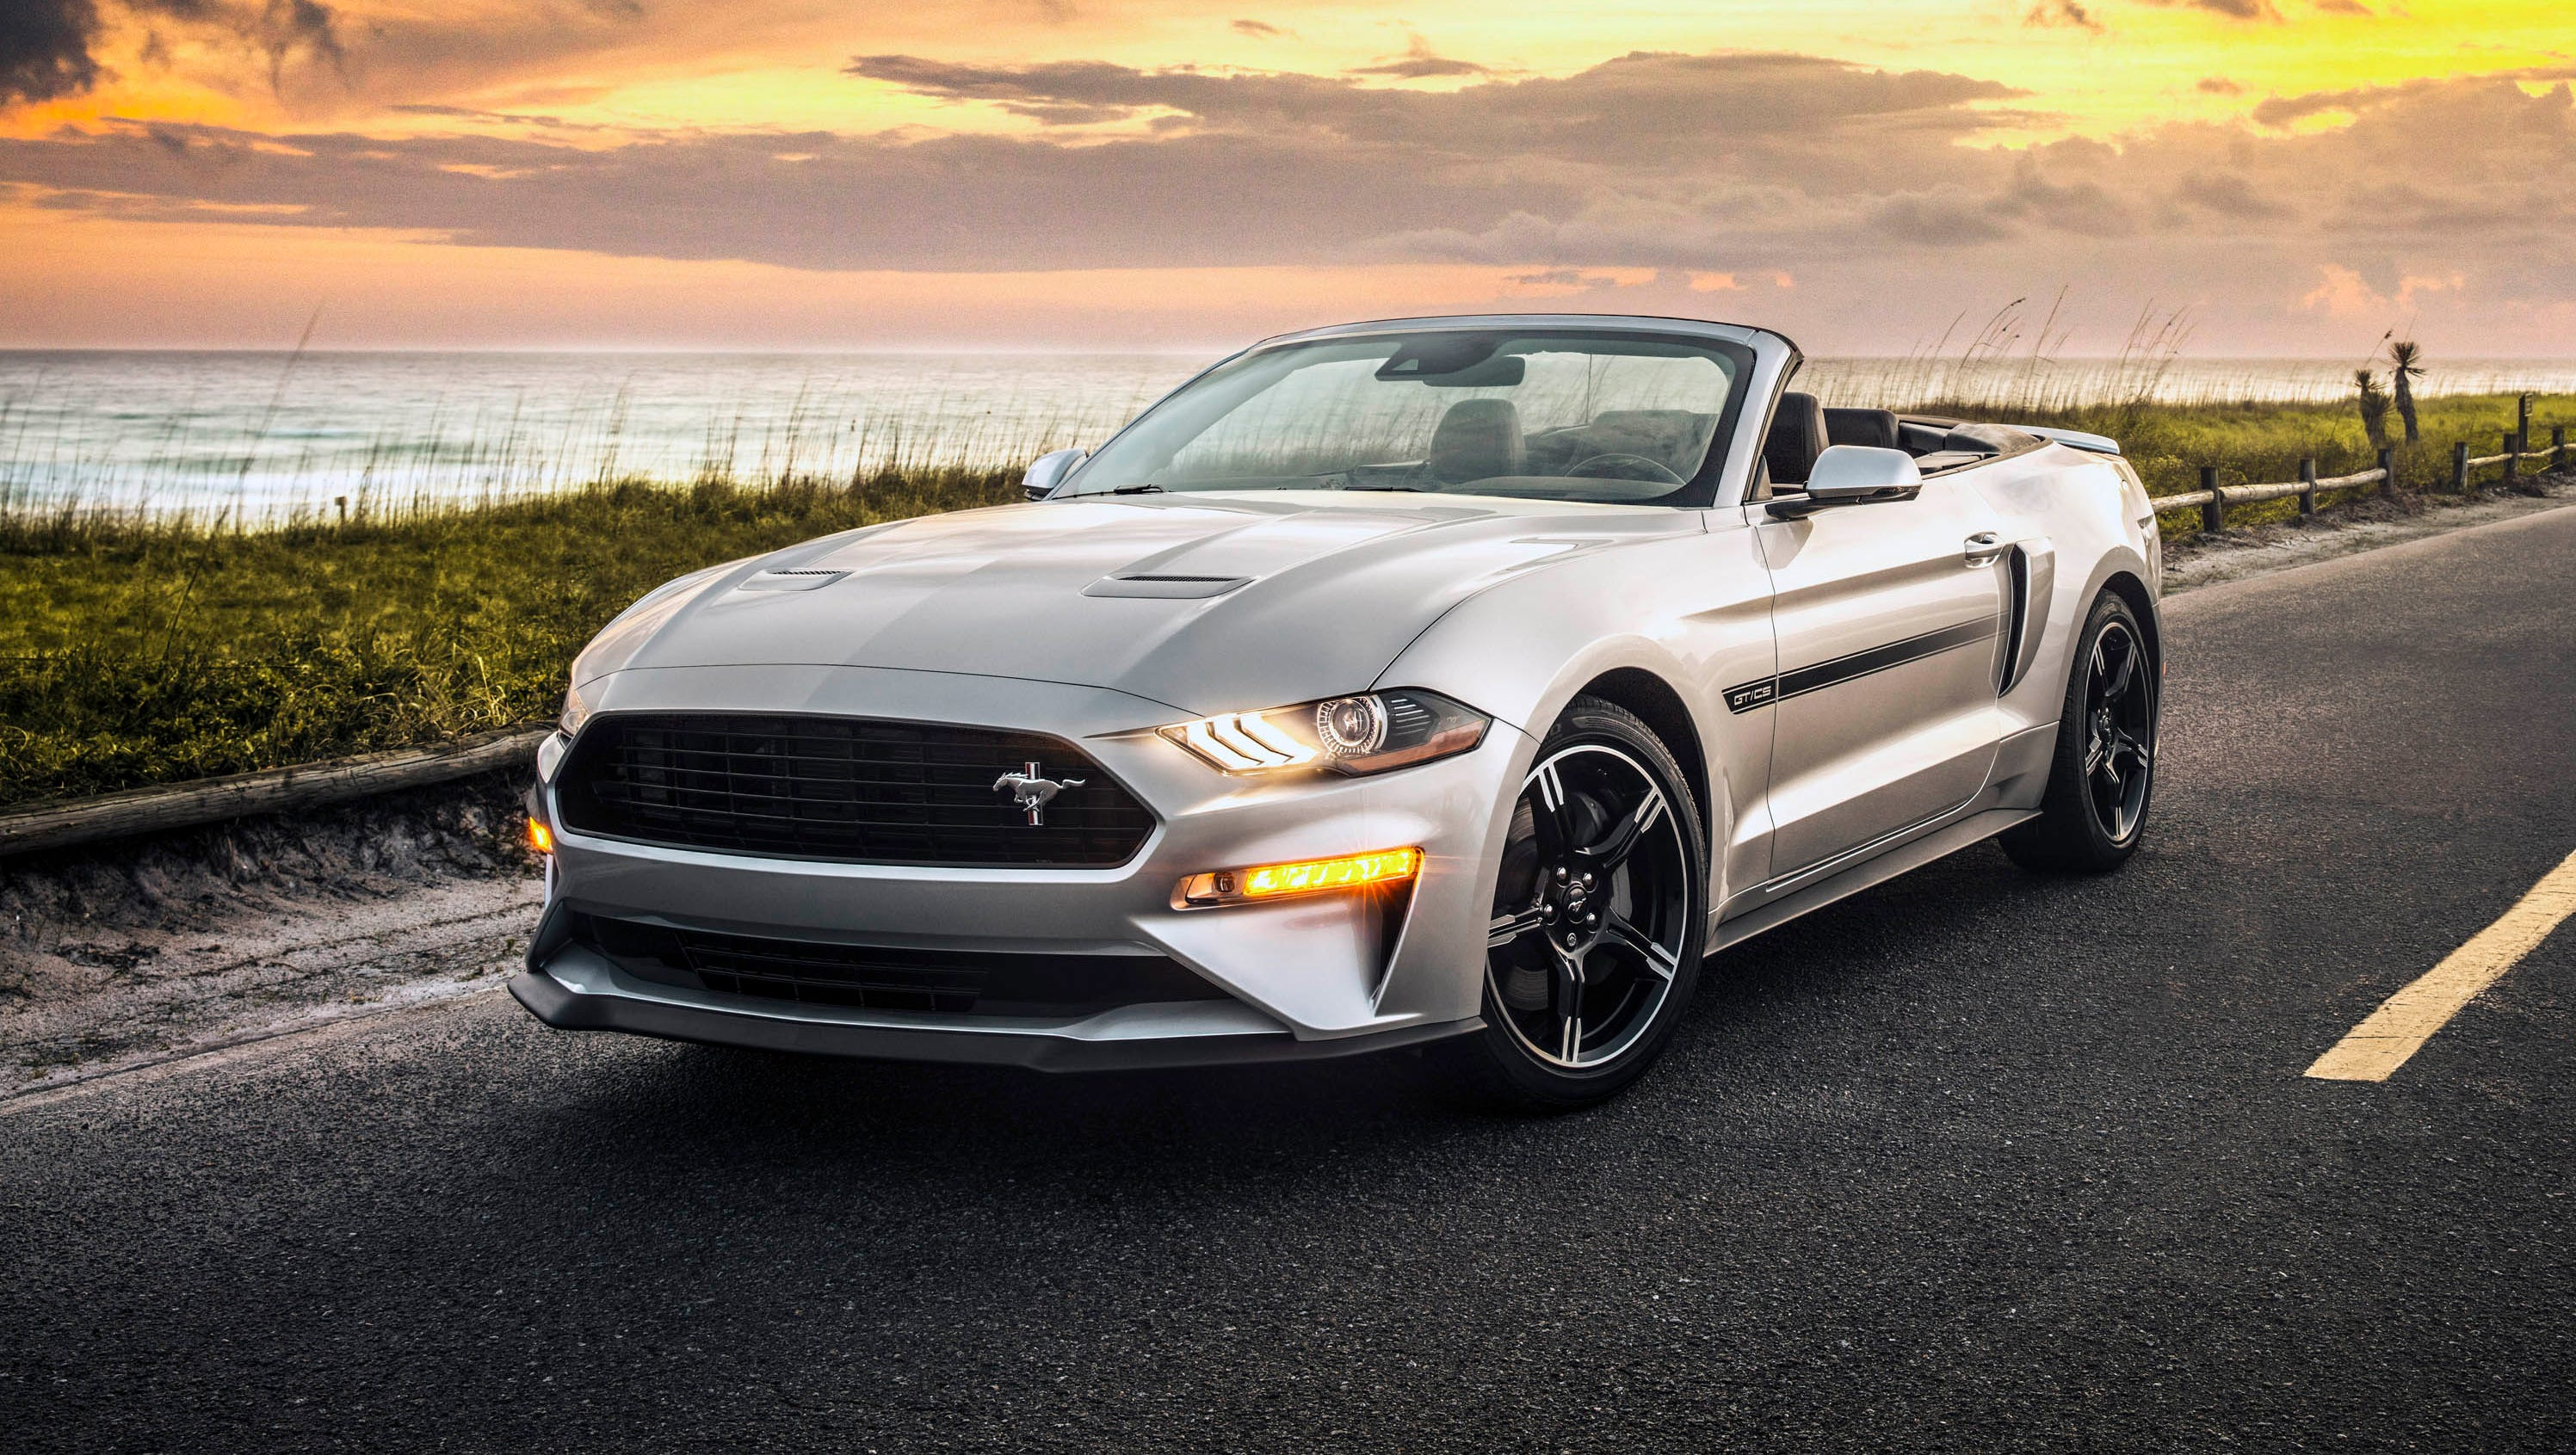 2019 Ford Mustang Gt California Special Adds Muscle To Lineup